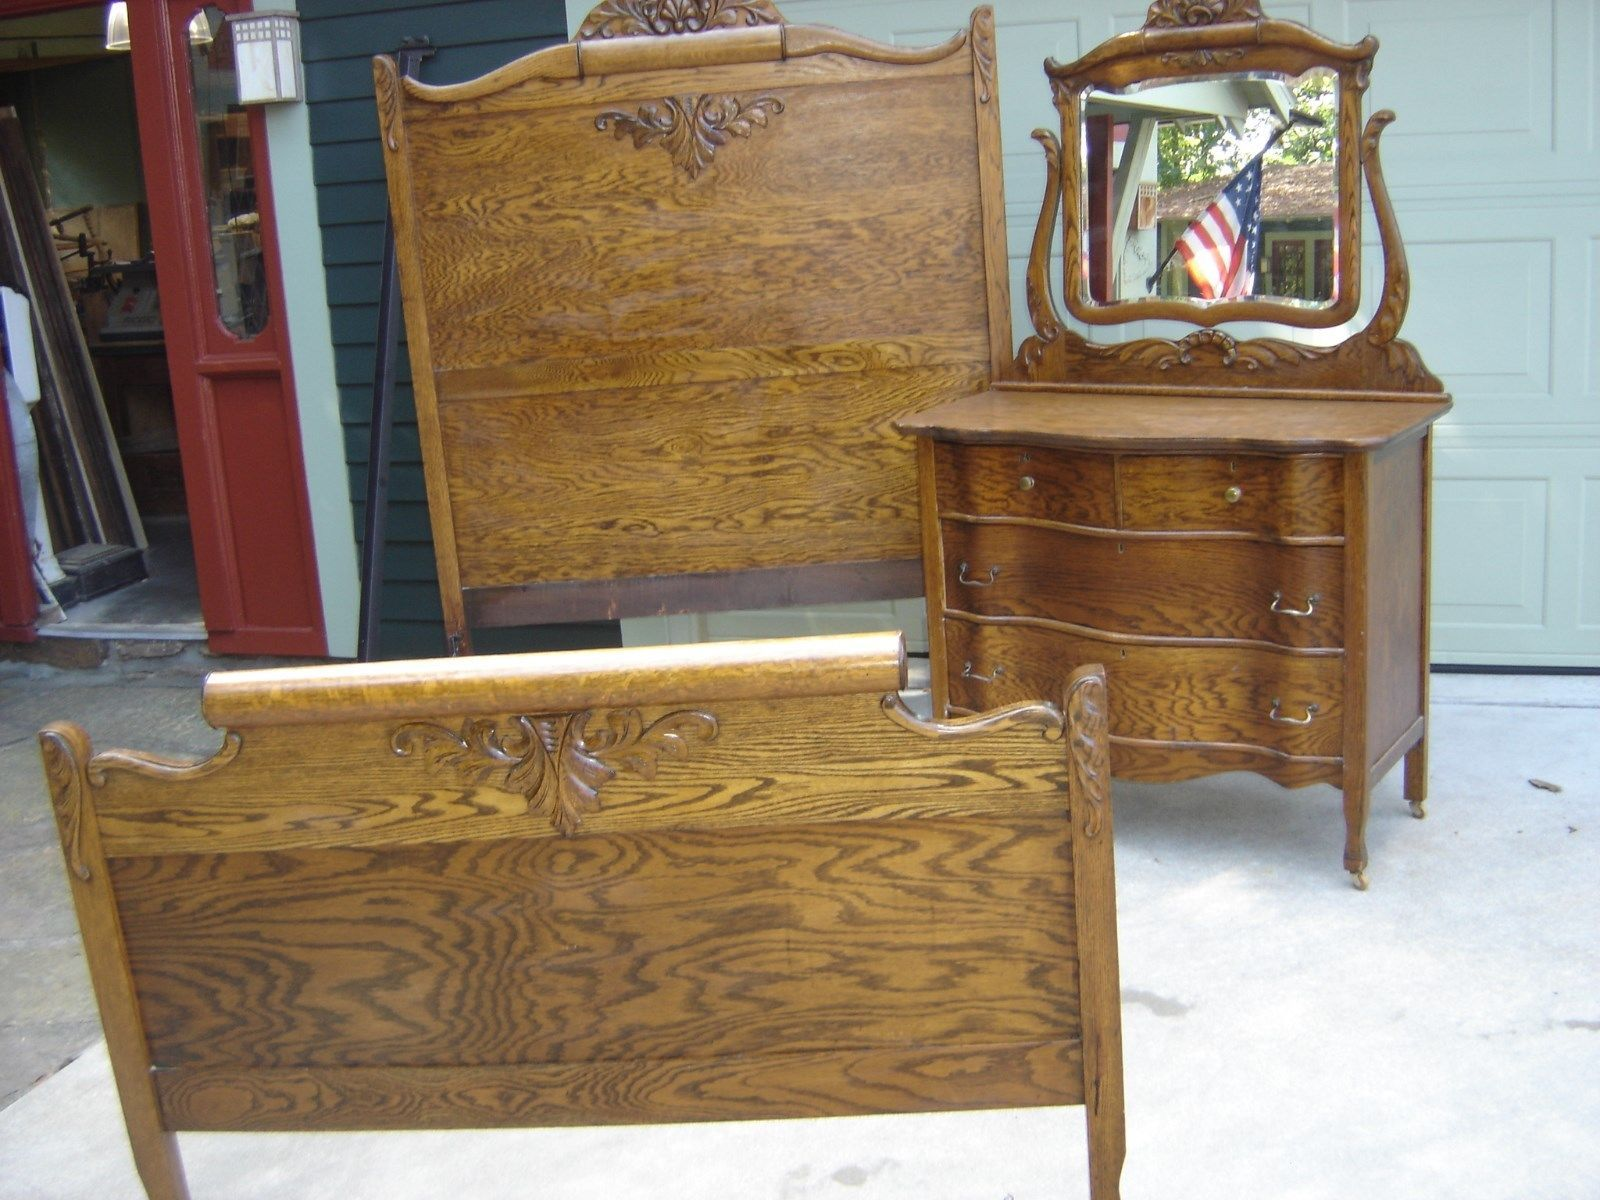 Quarter Sawn Oak Tall Oak Bed With Matching Dresser With